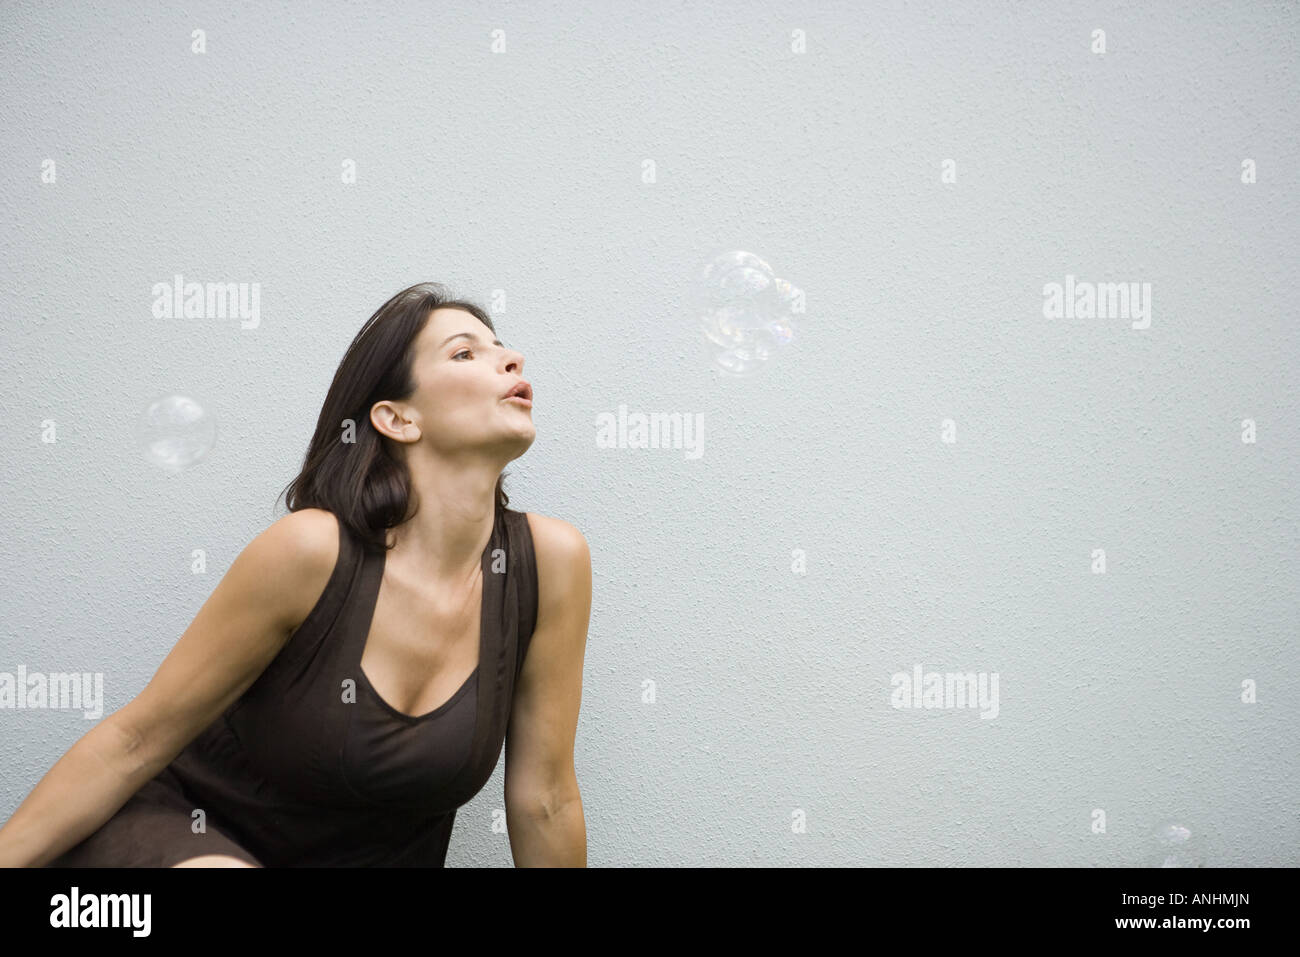 Woman blowing bubbles, waist up - Stock Image